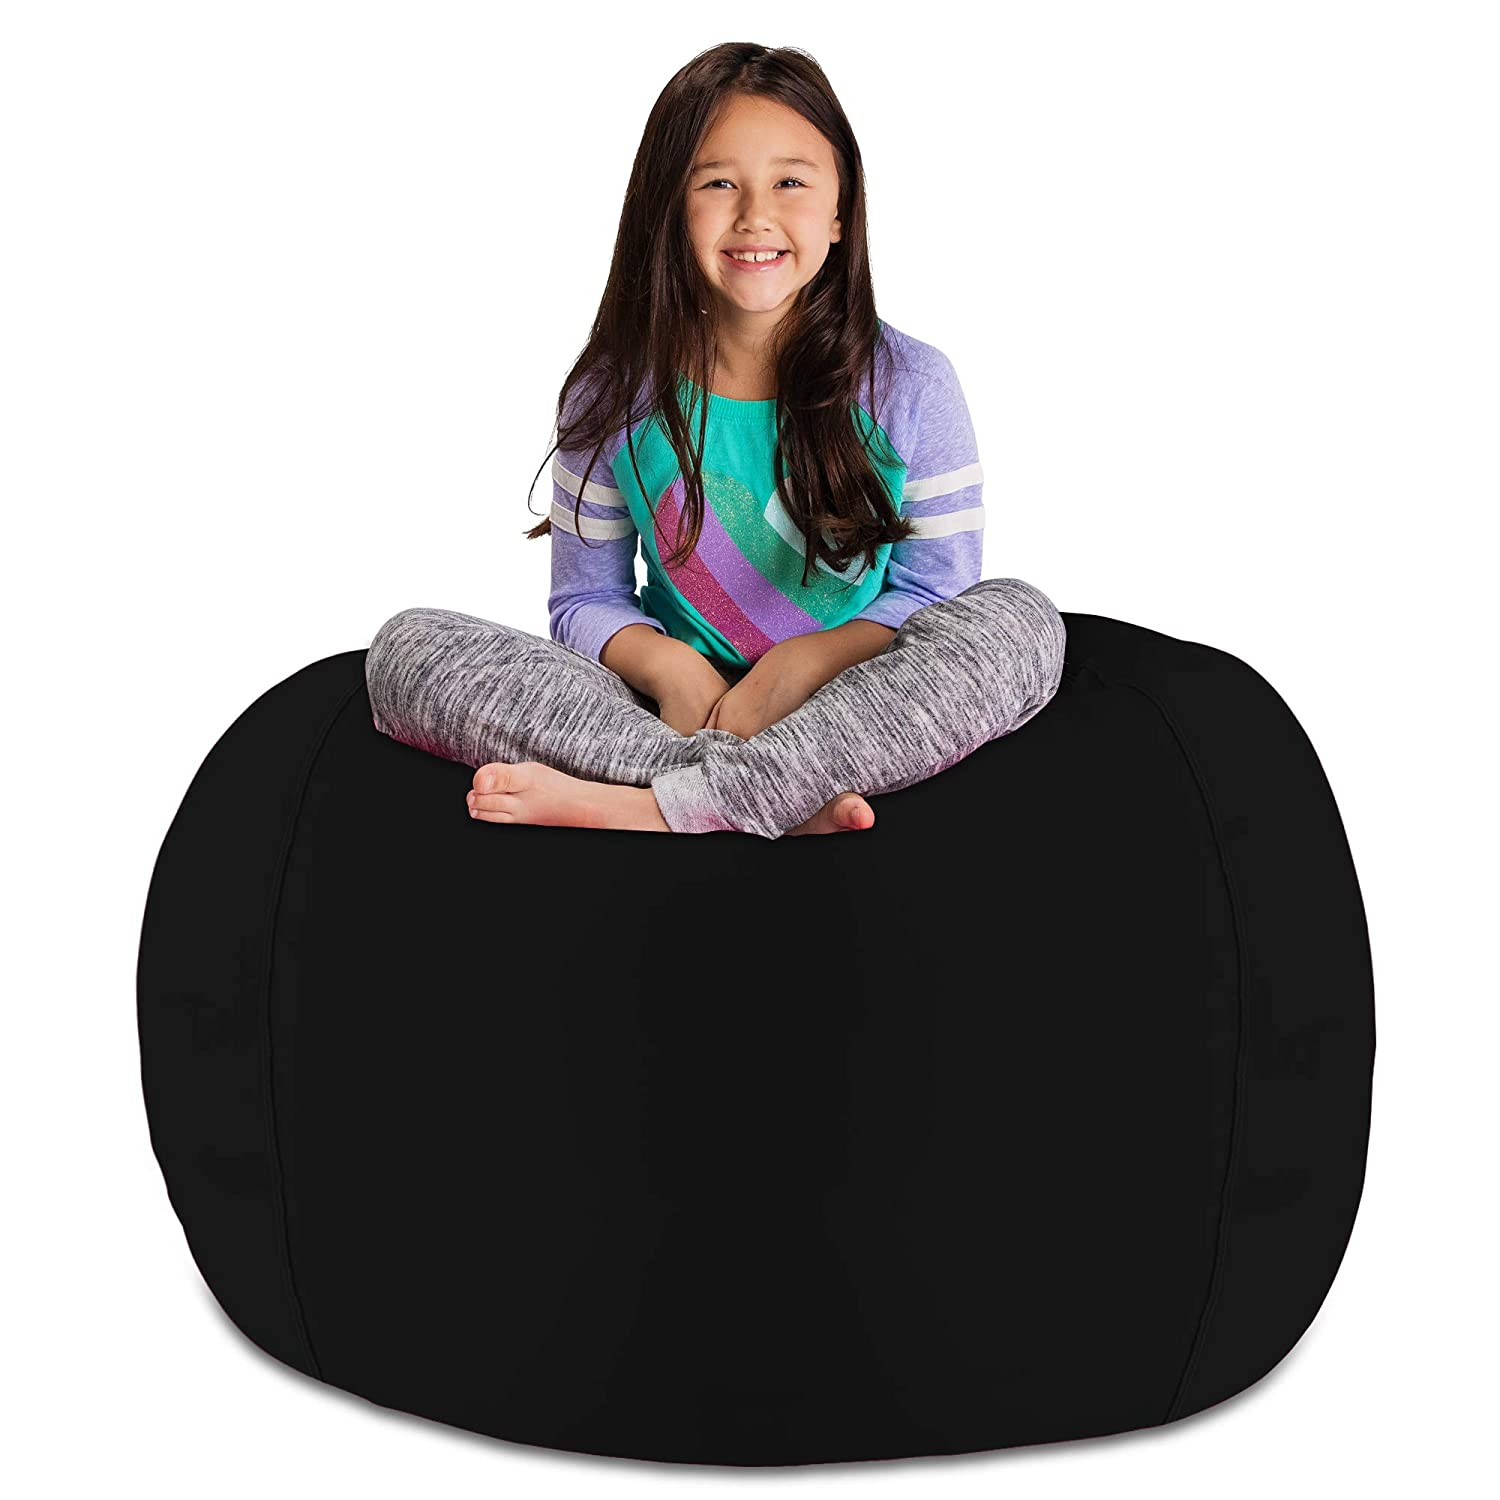 Tremendous Posh Stuffable Amzst Bxl Sol Blk Kids Stuffed Animal Storage Bean Bag Chair Cover Childrens Toy Organizer X Large 48In Solid Black Camellatalisay Diy Chair Ideas Camellatalisaycom